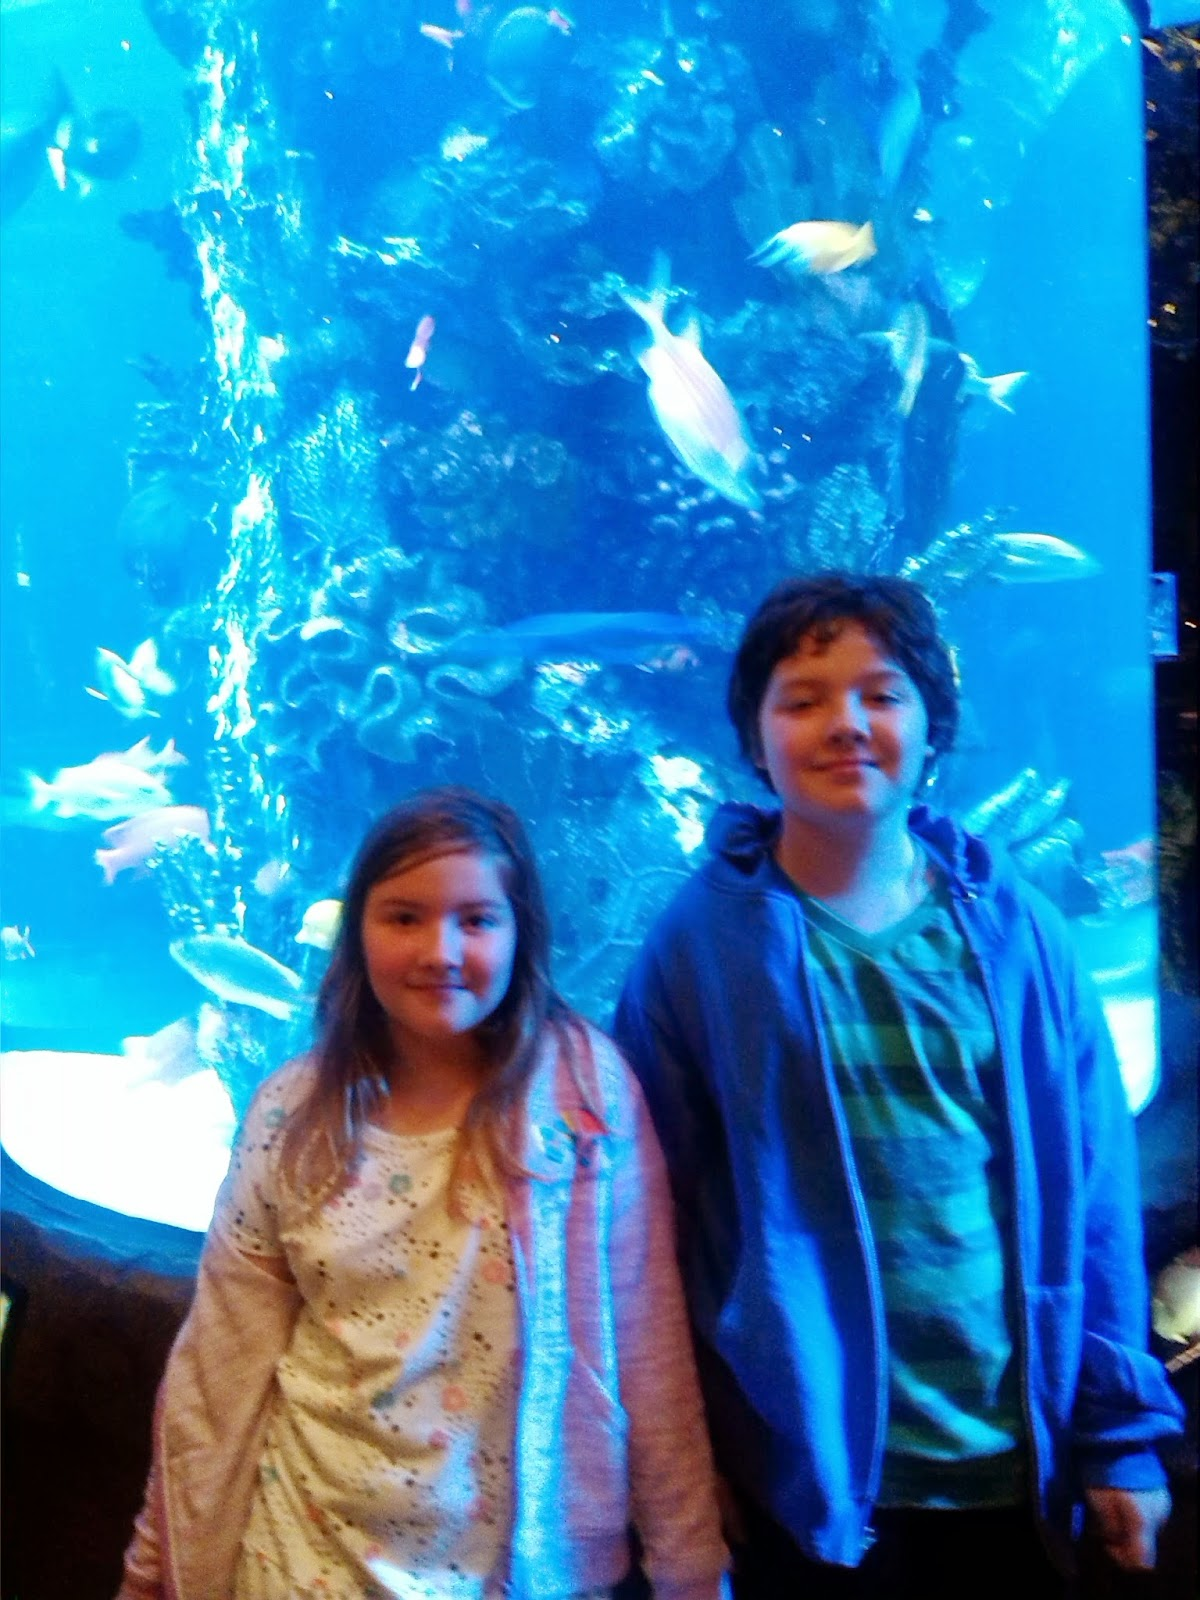 Visiting an Aquarium